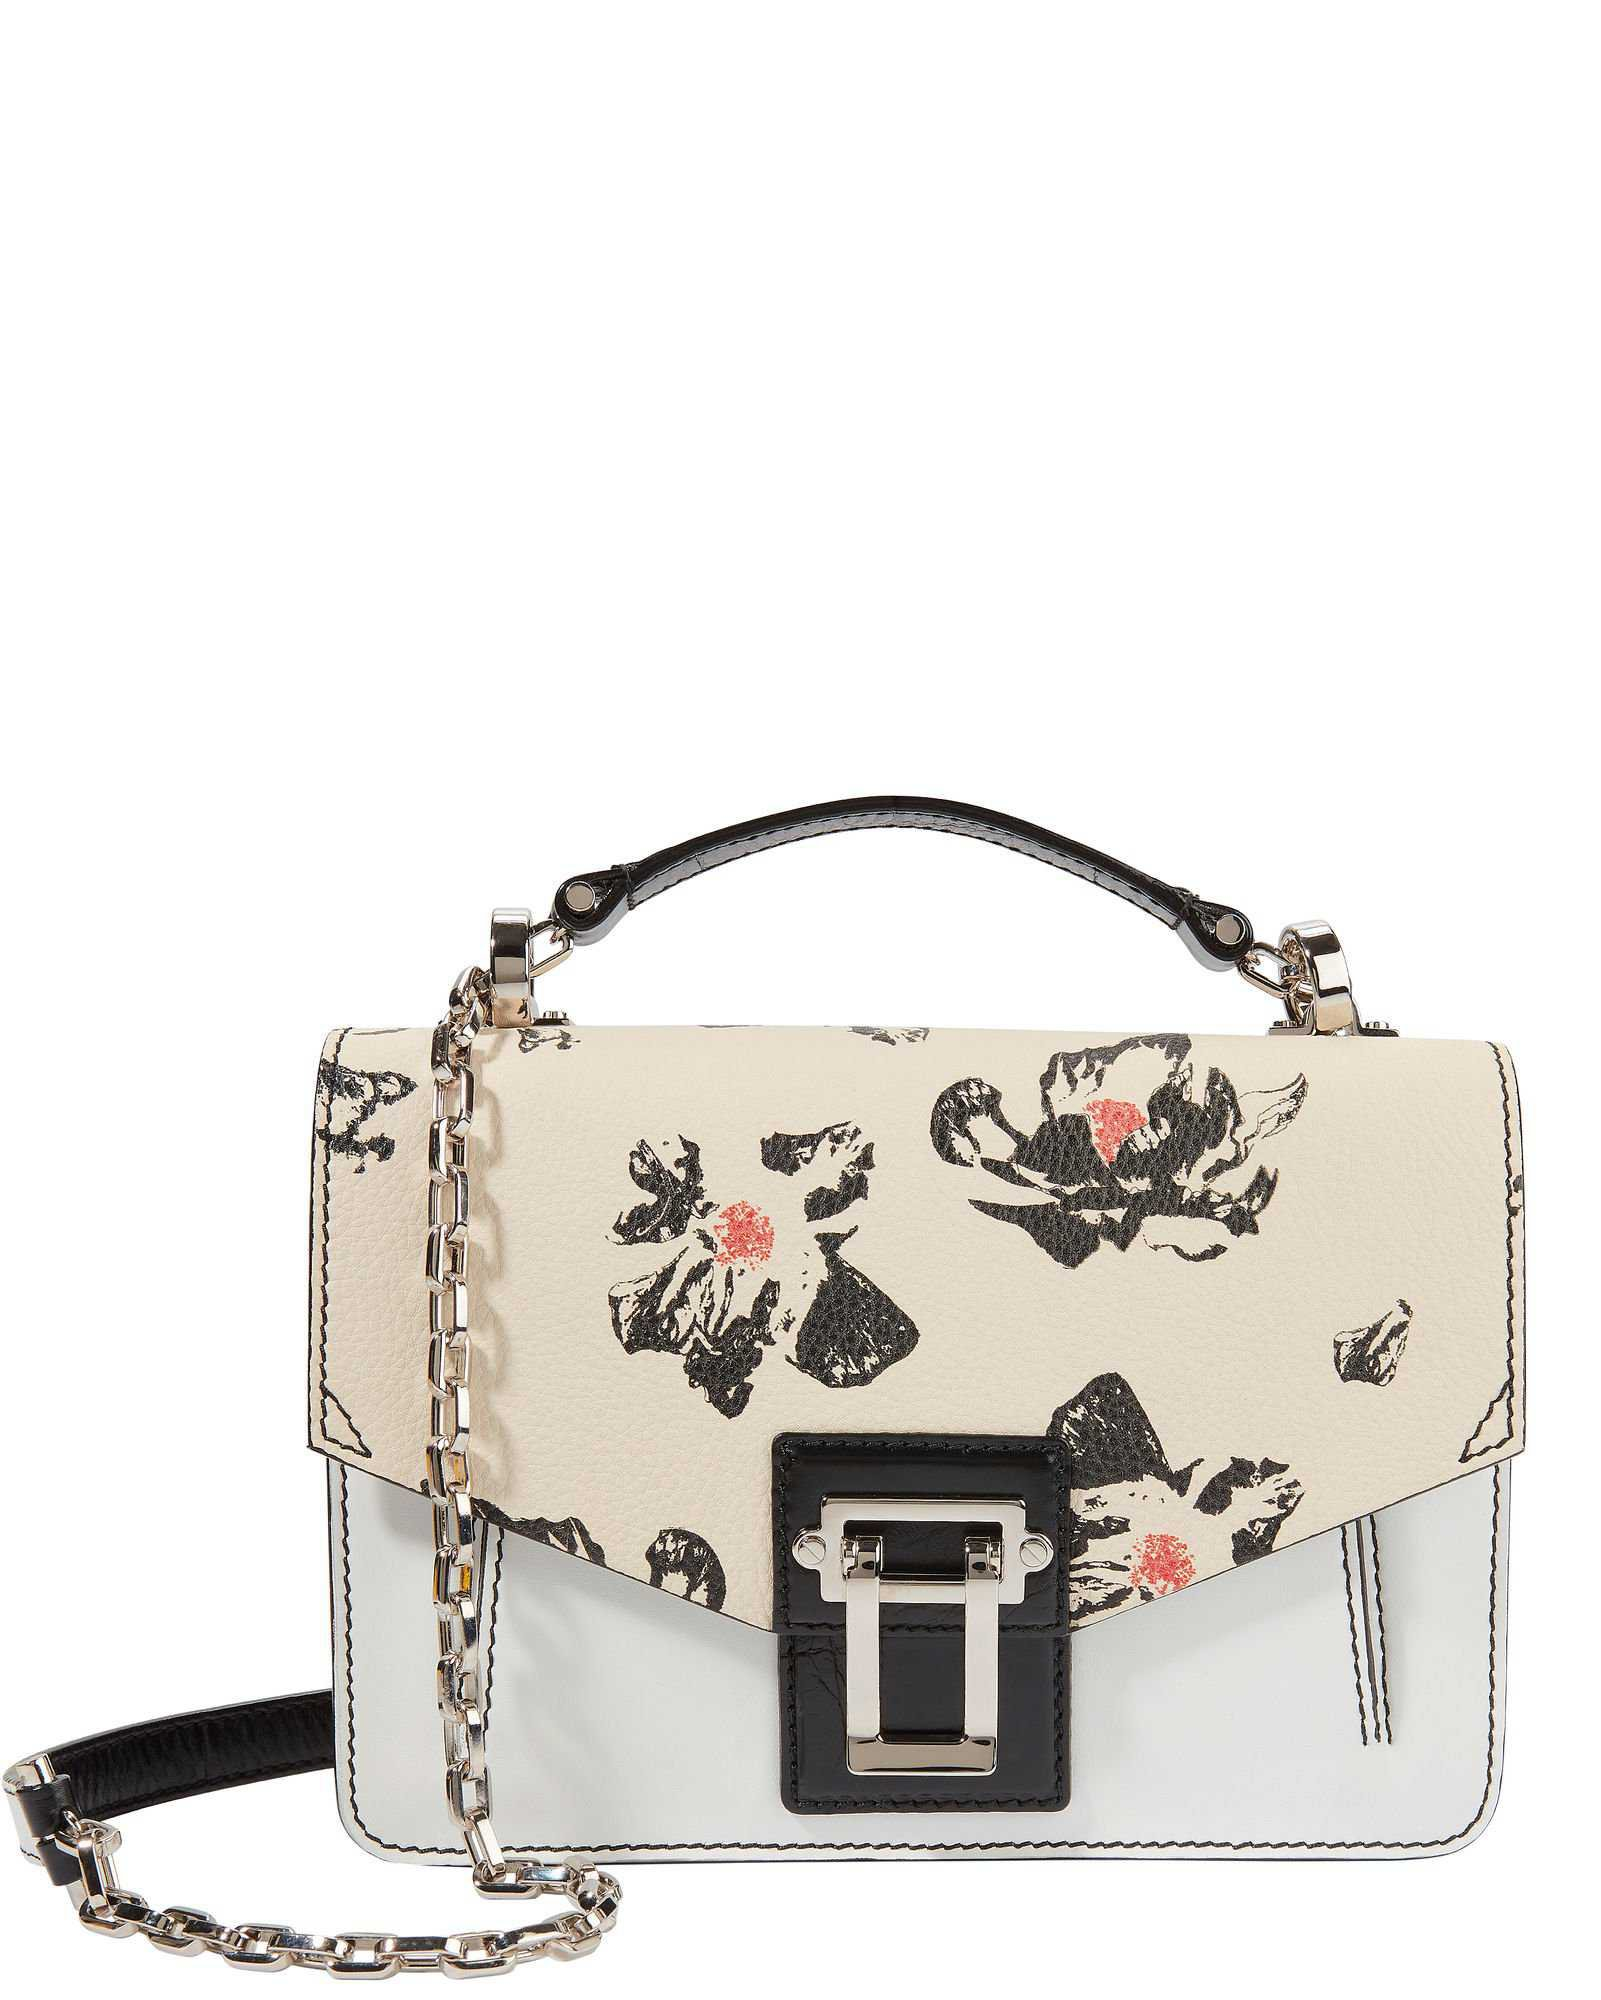 Hava Chain Floral Leather Small Shoulder Bag